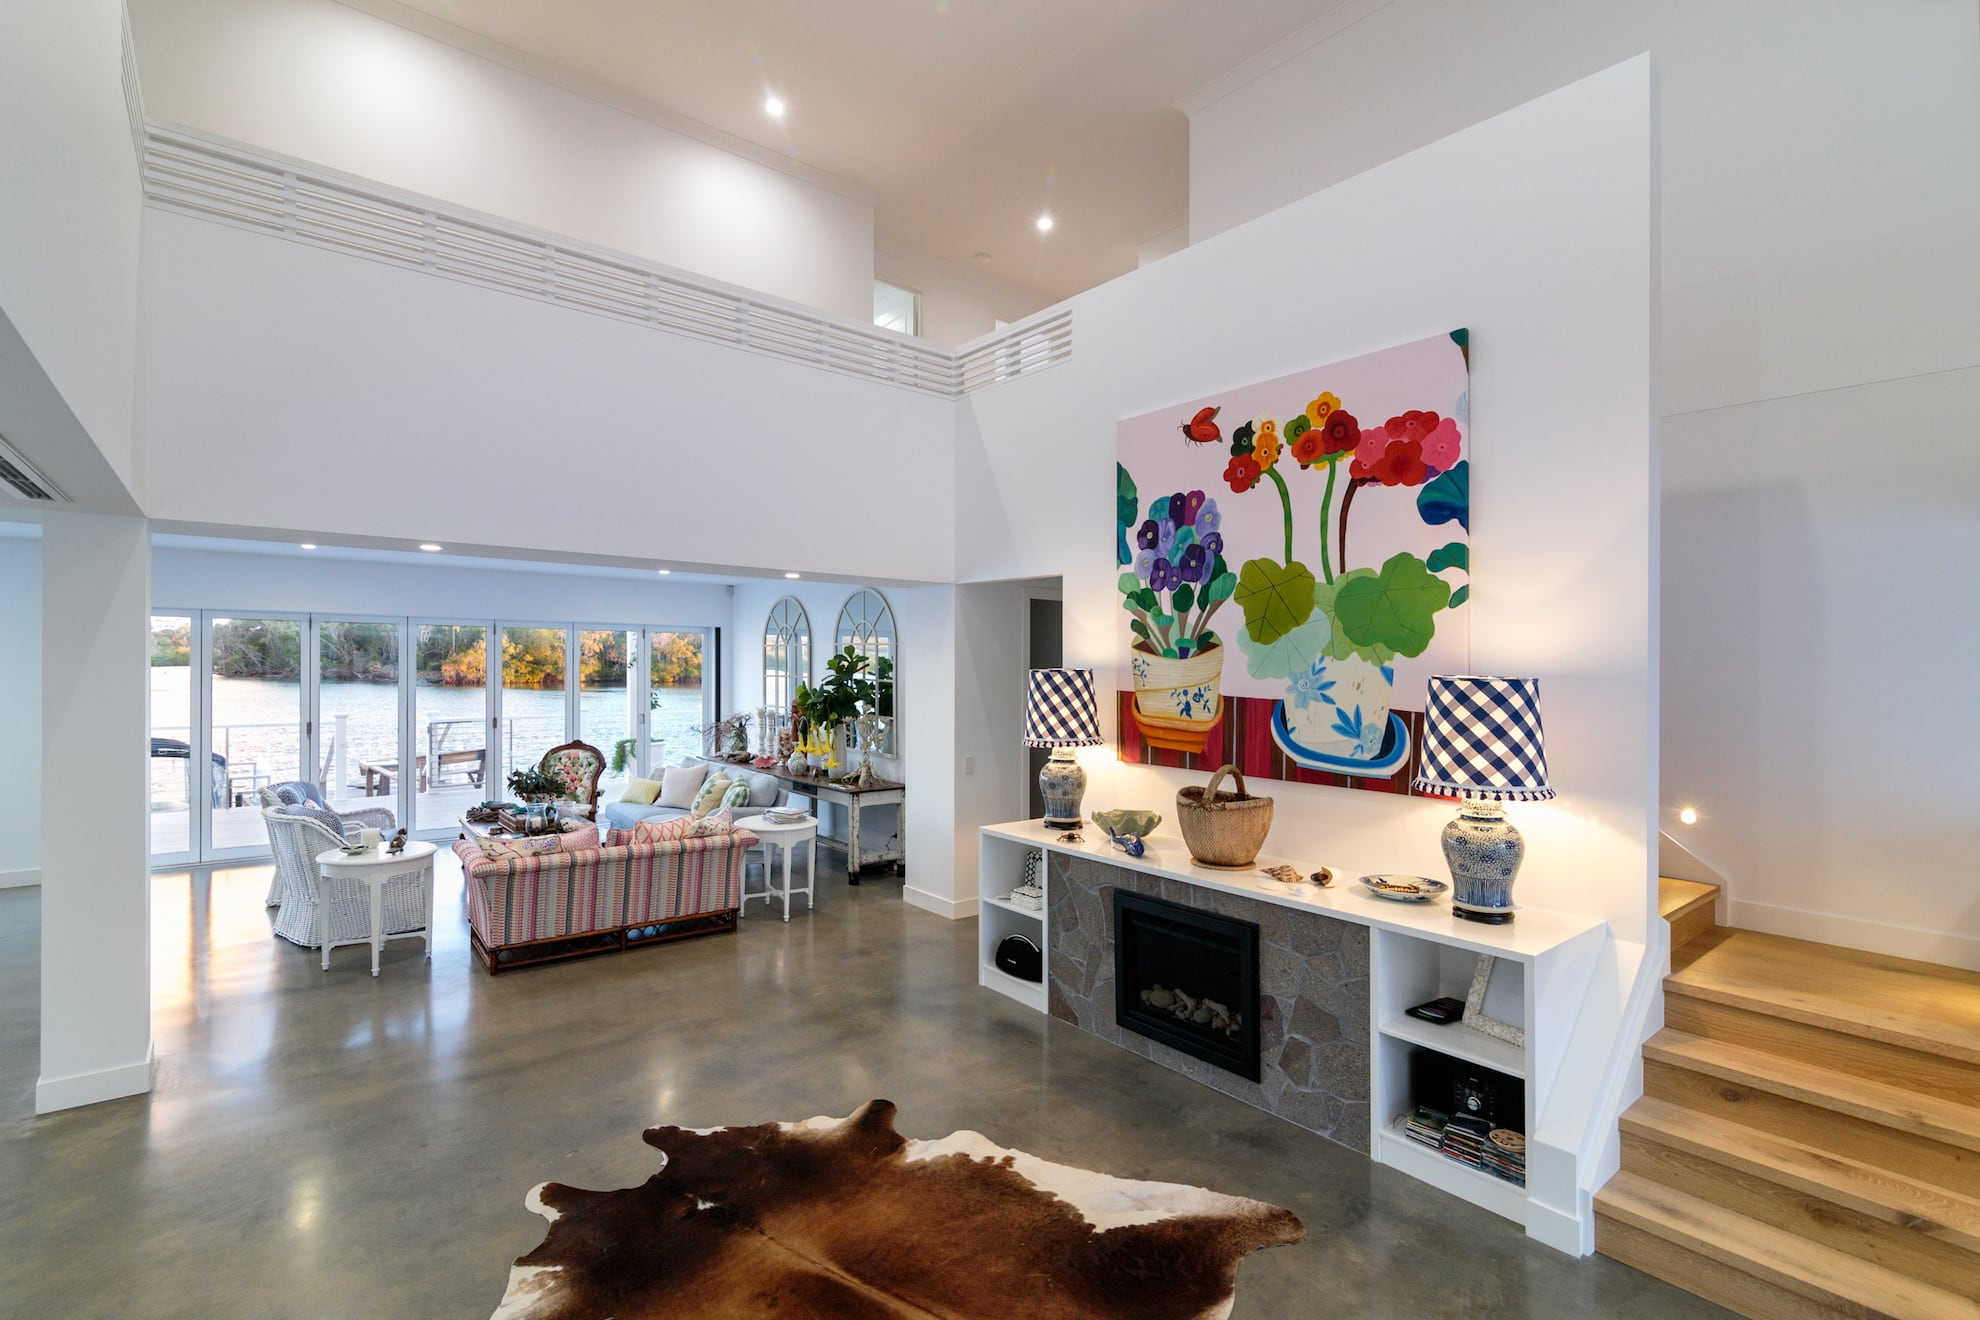 Dolphin Cres project by mdesign, a building design practice that operates on the Sunshine Coast.